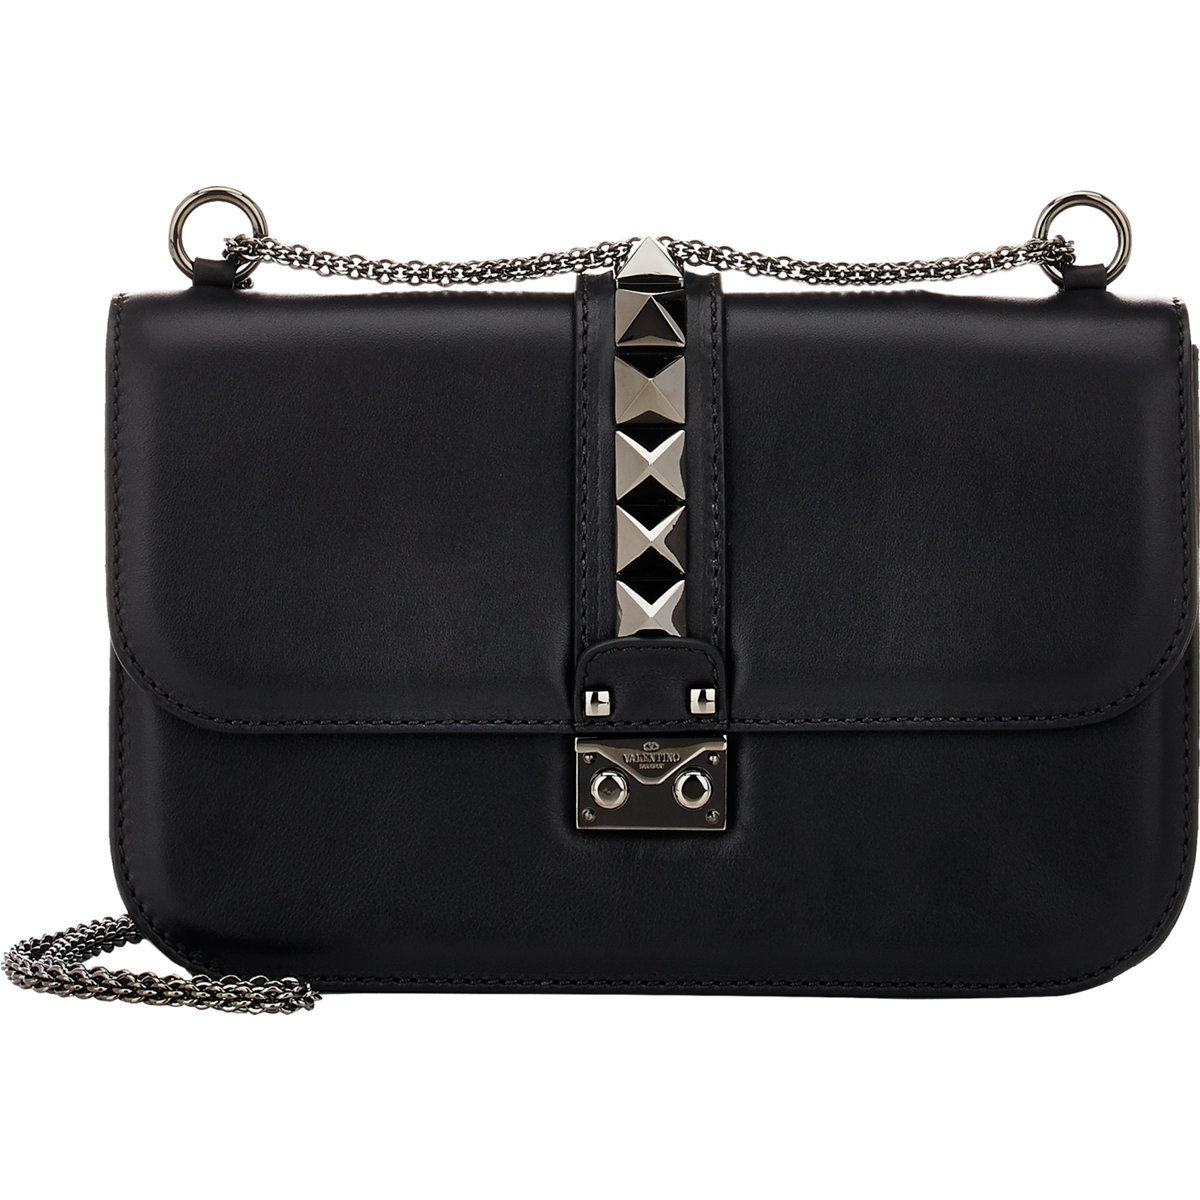 Gallery Previously Sold At Barneys New York Women S Valentino Rockstud Bags